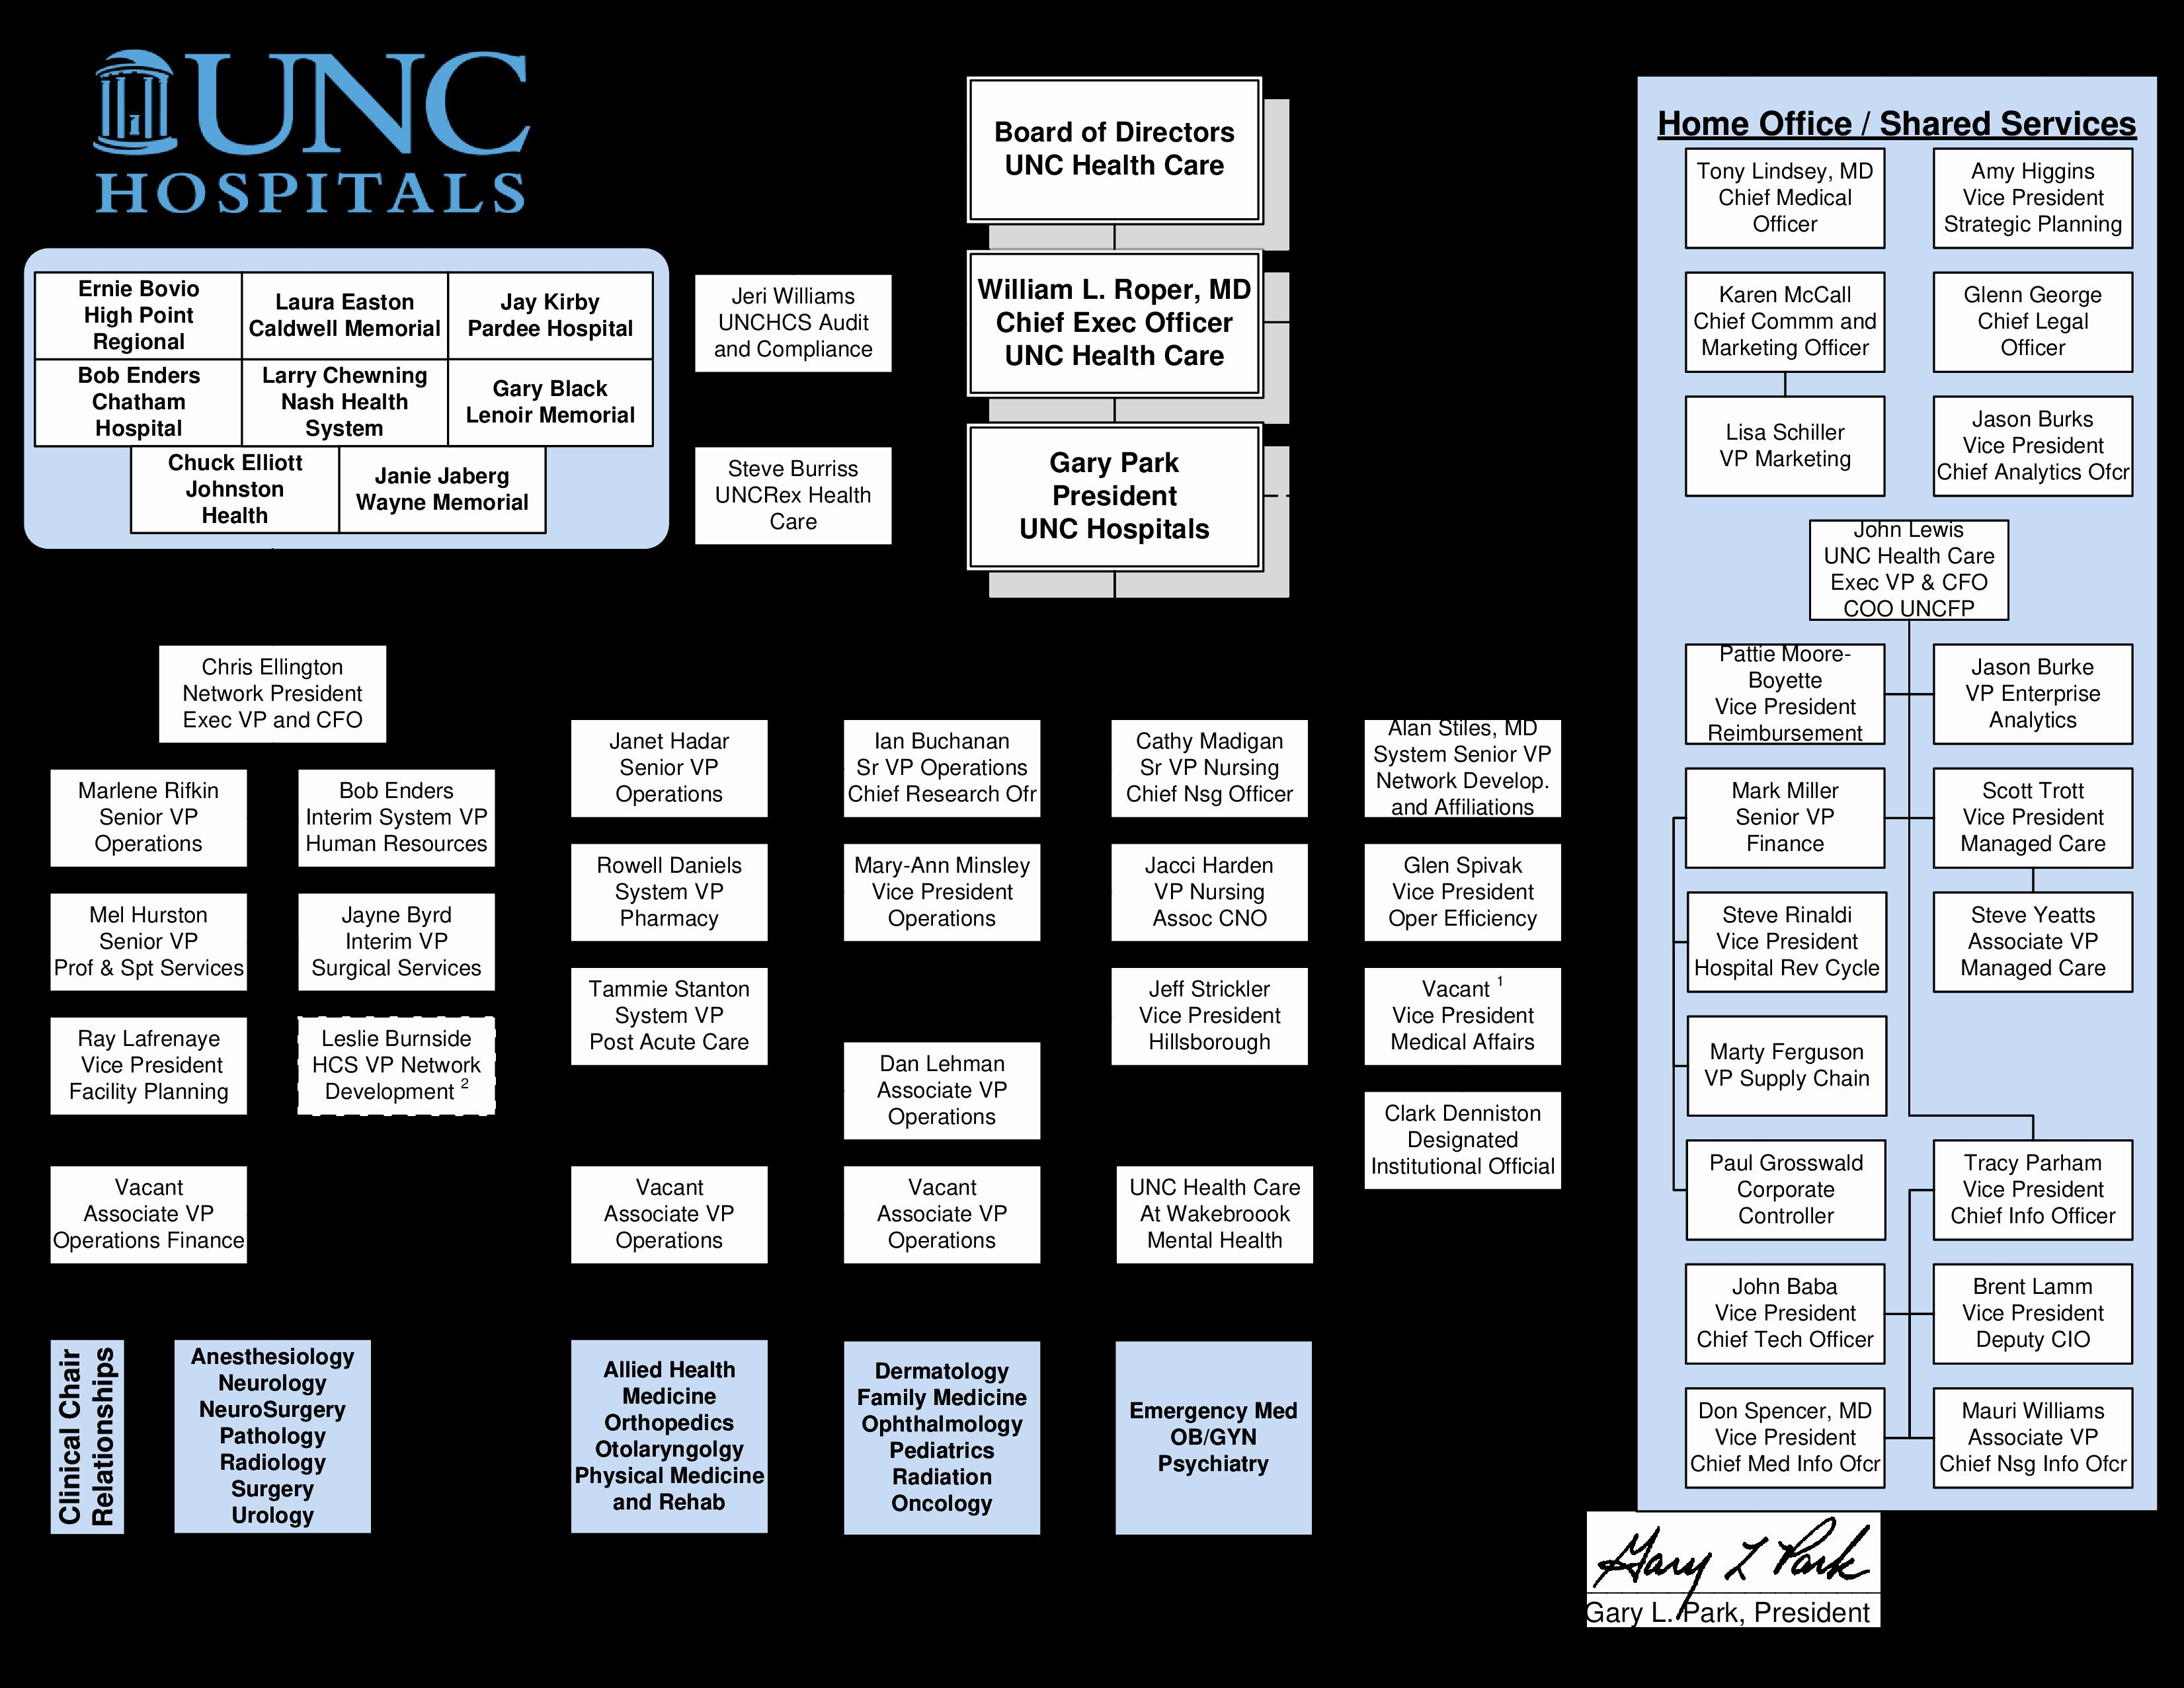 Hospital Organizational Chart Examples Lovely Image Result For Organizational Chart For As Organizational Chart Examples Organizational Chart Business Template